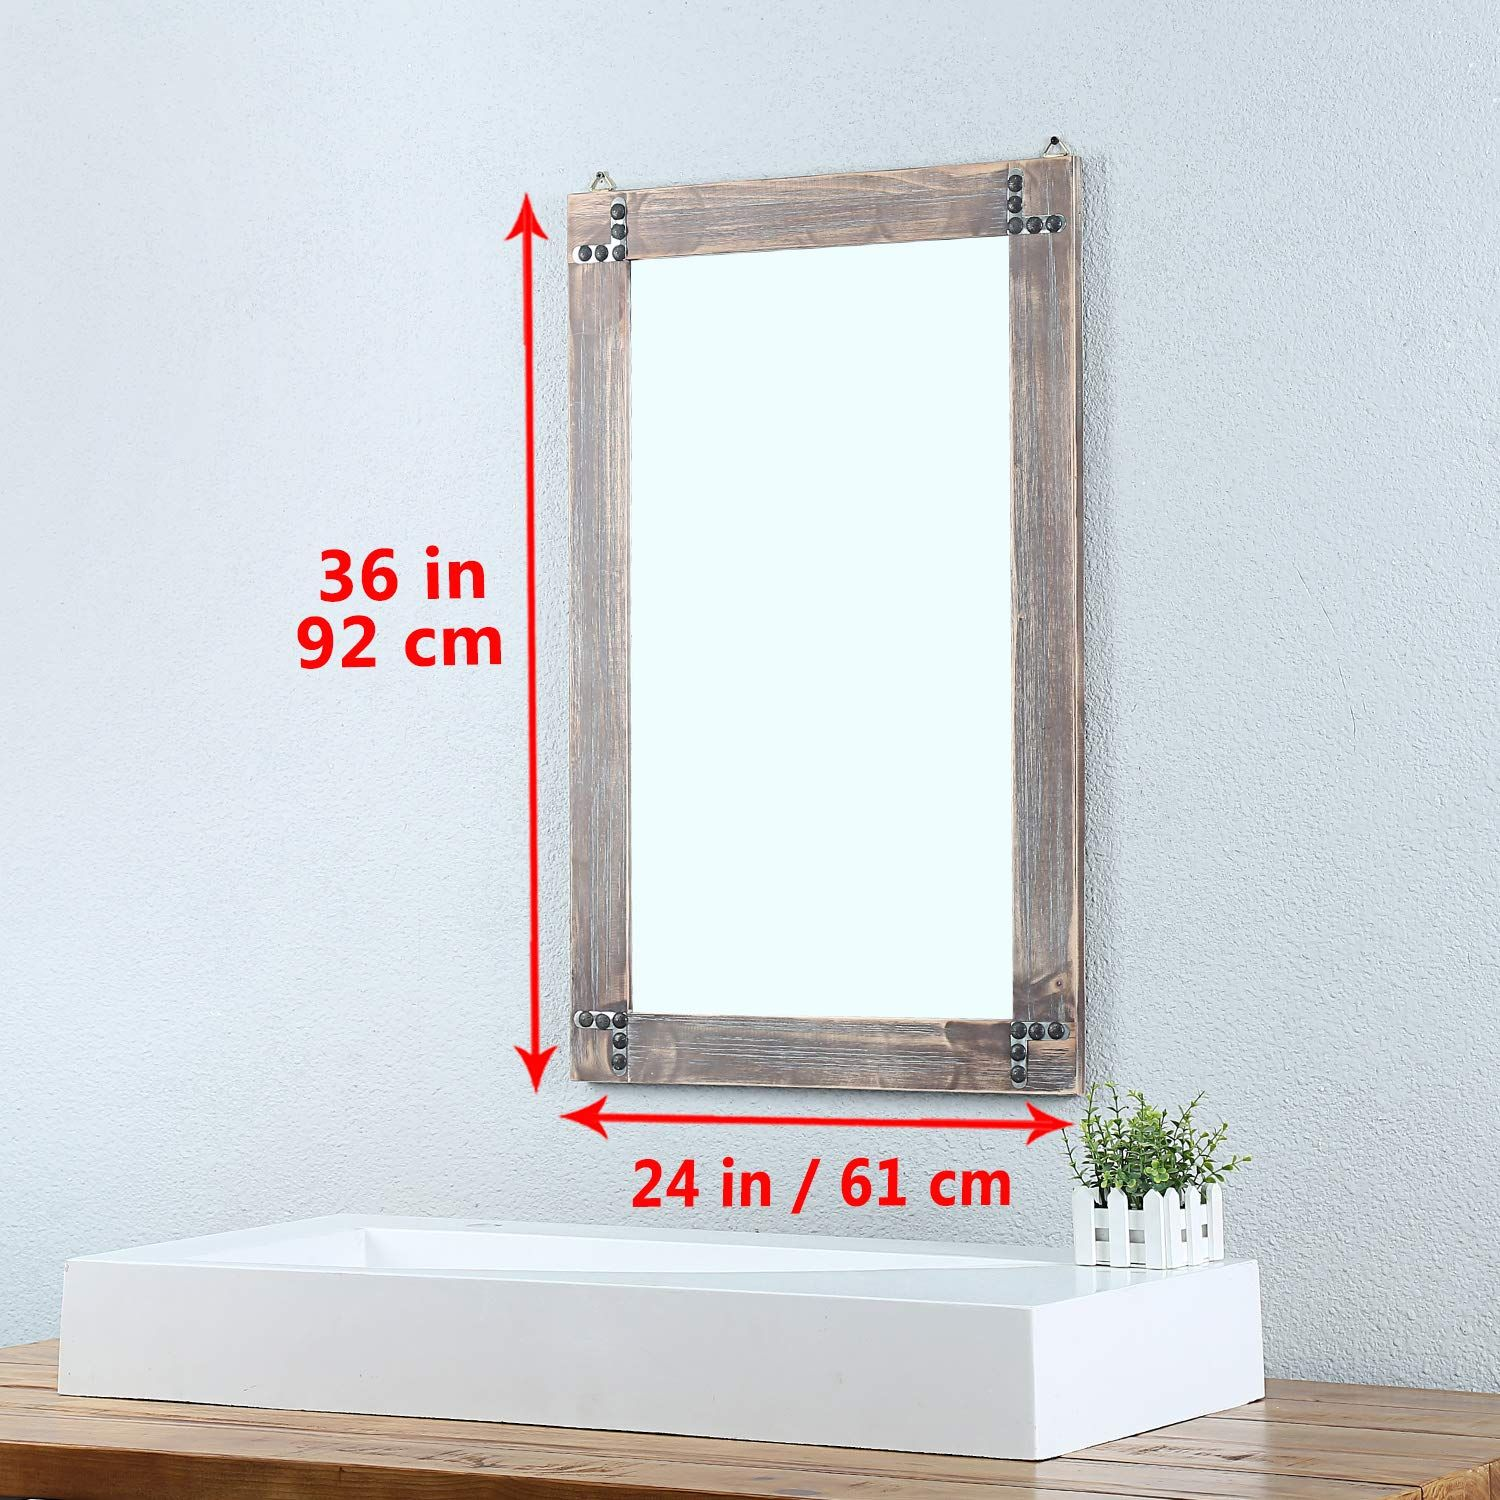 Weven 24in X 36in Rustic Wood Frame Hanging Wall Mirror Decorative Bathroom Mirrors For Wall Va Mirror Wall Decor Decorative Bathroom Mirrors Rustic Wood Frame [ 1500 x 1500 Pixel ]